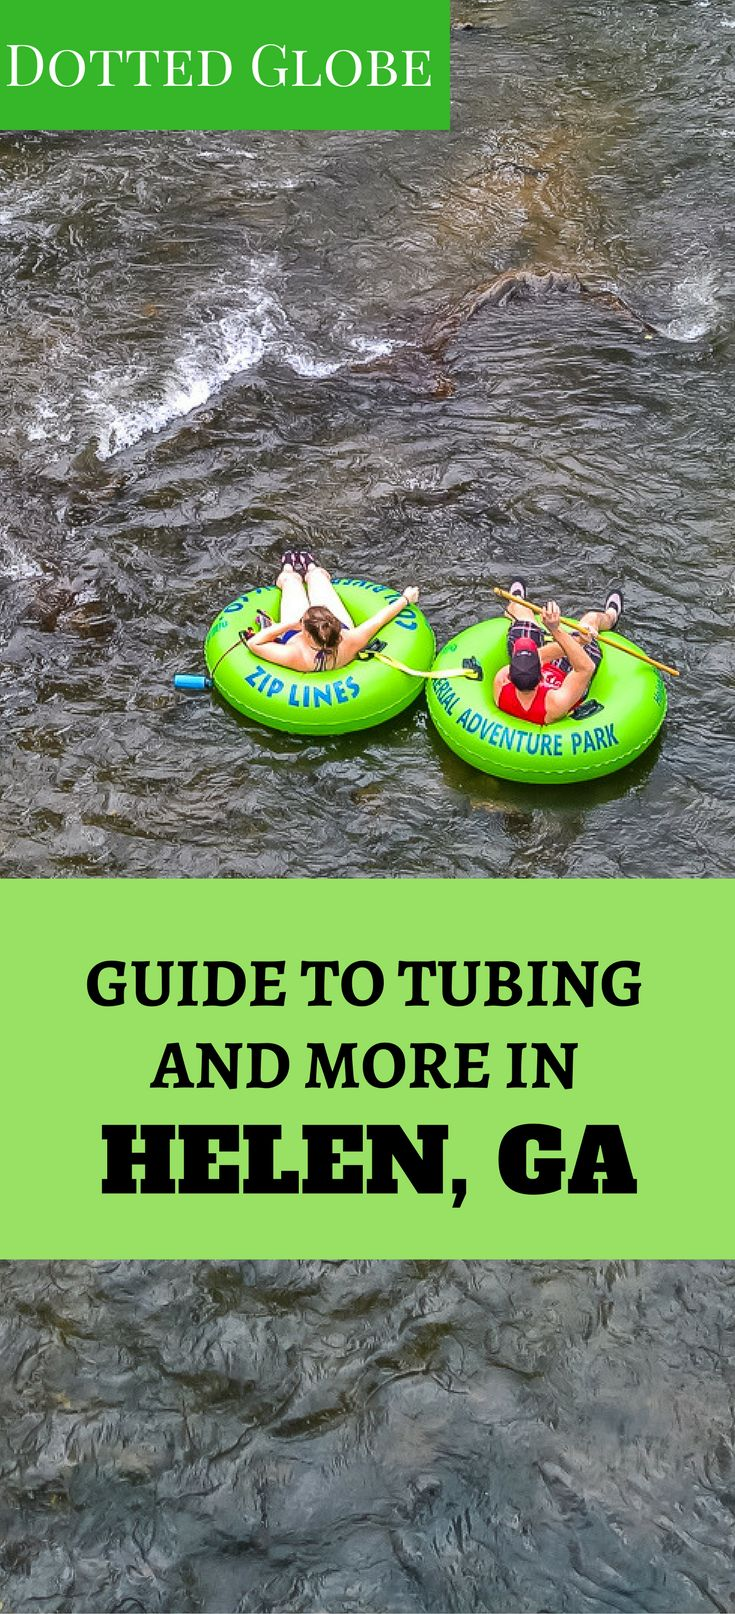 Comprehensive Guide to Helen, a Bavarian Appalachian town in Northern Georgia. Helen GA tourist attractions include walking down Main street, tubing & more.